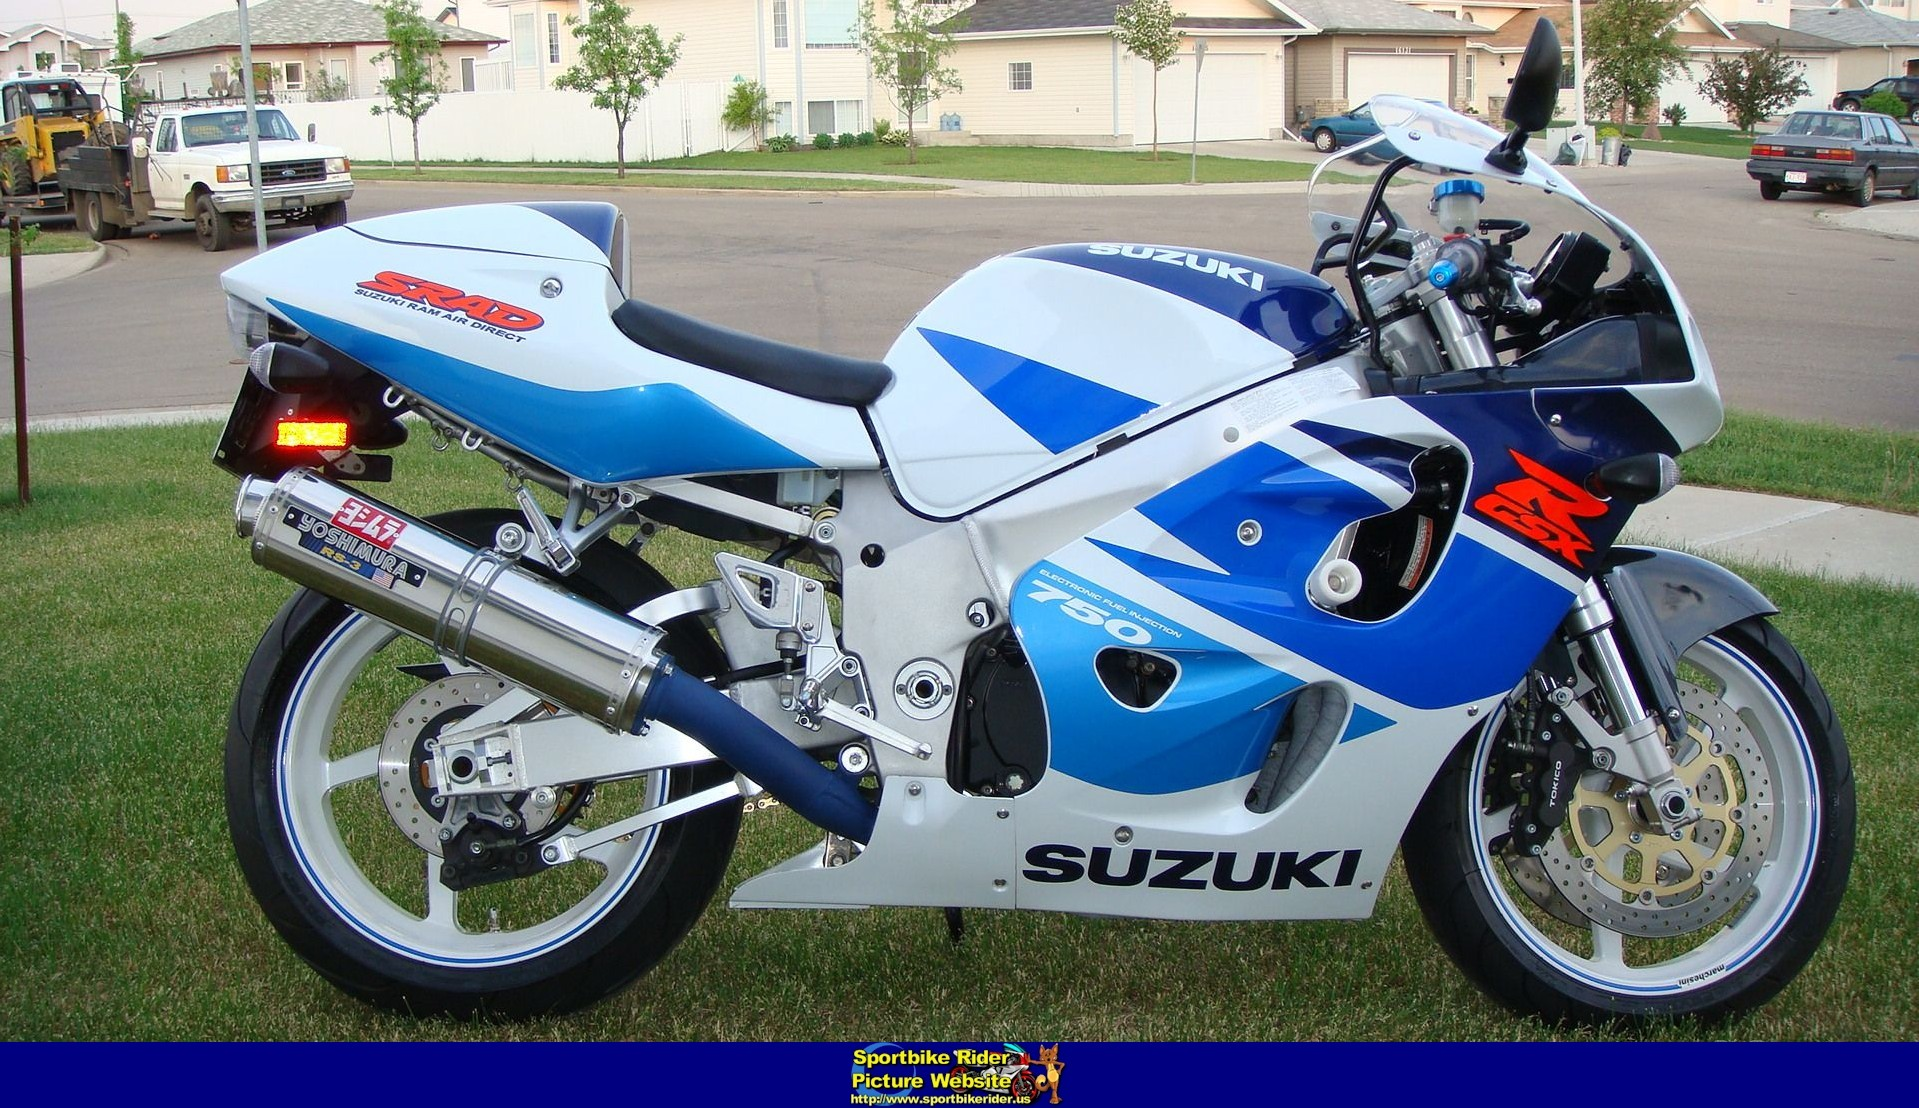 1998 suzuki gsx r 750 moto zombdrive com. Black Bedroom Furniture Sets. Home Design Ideas